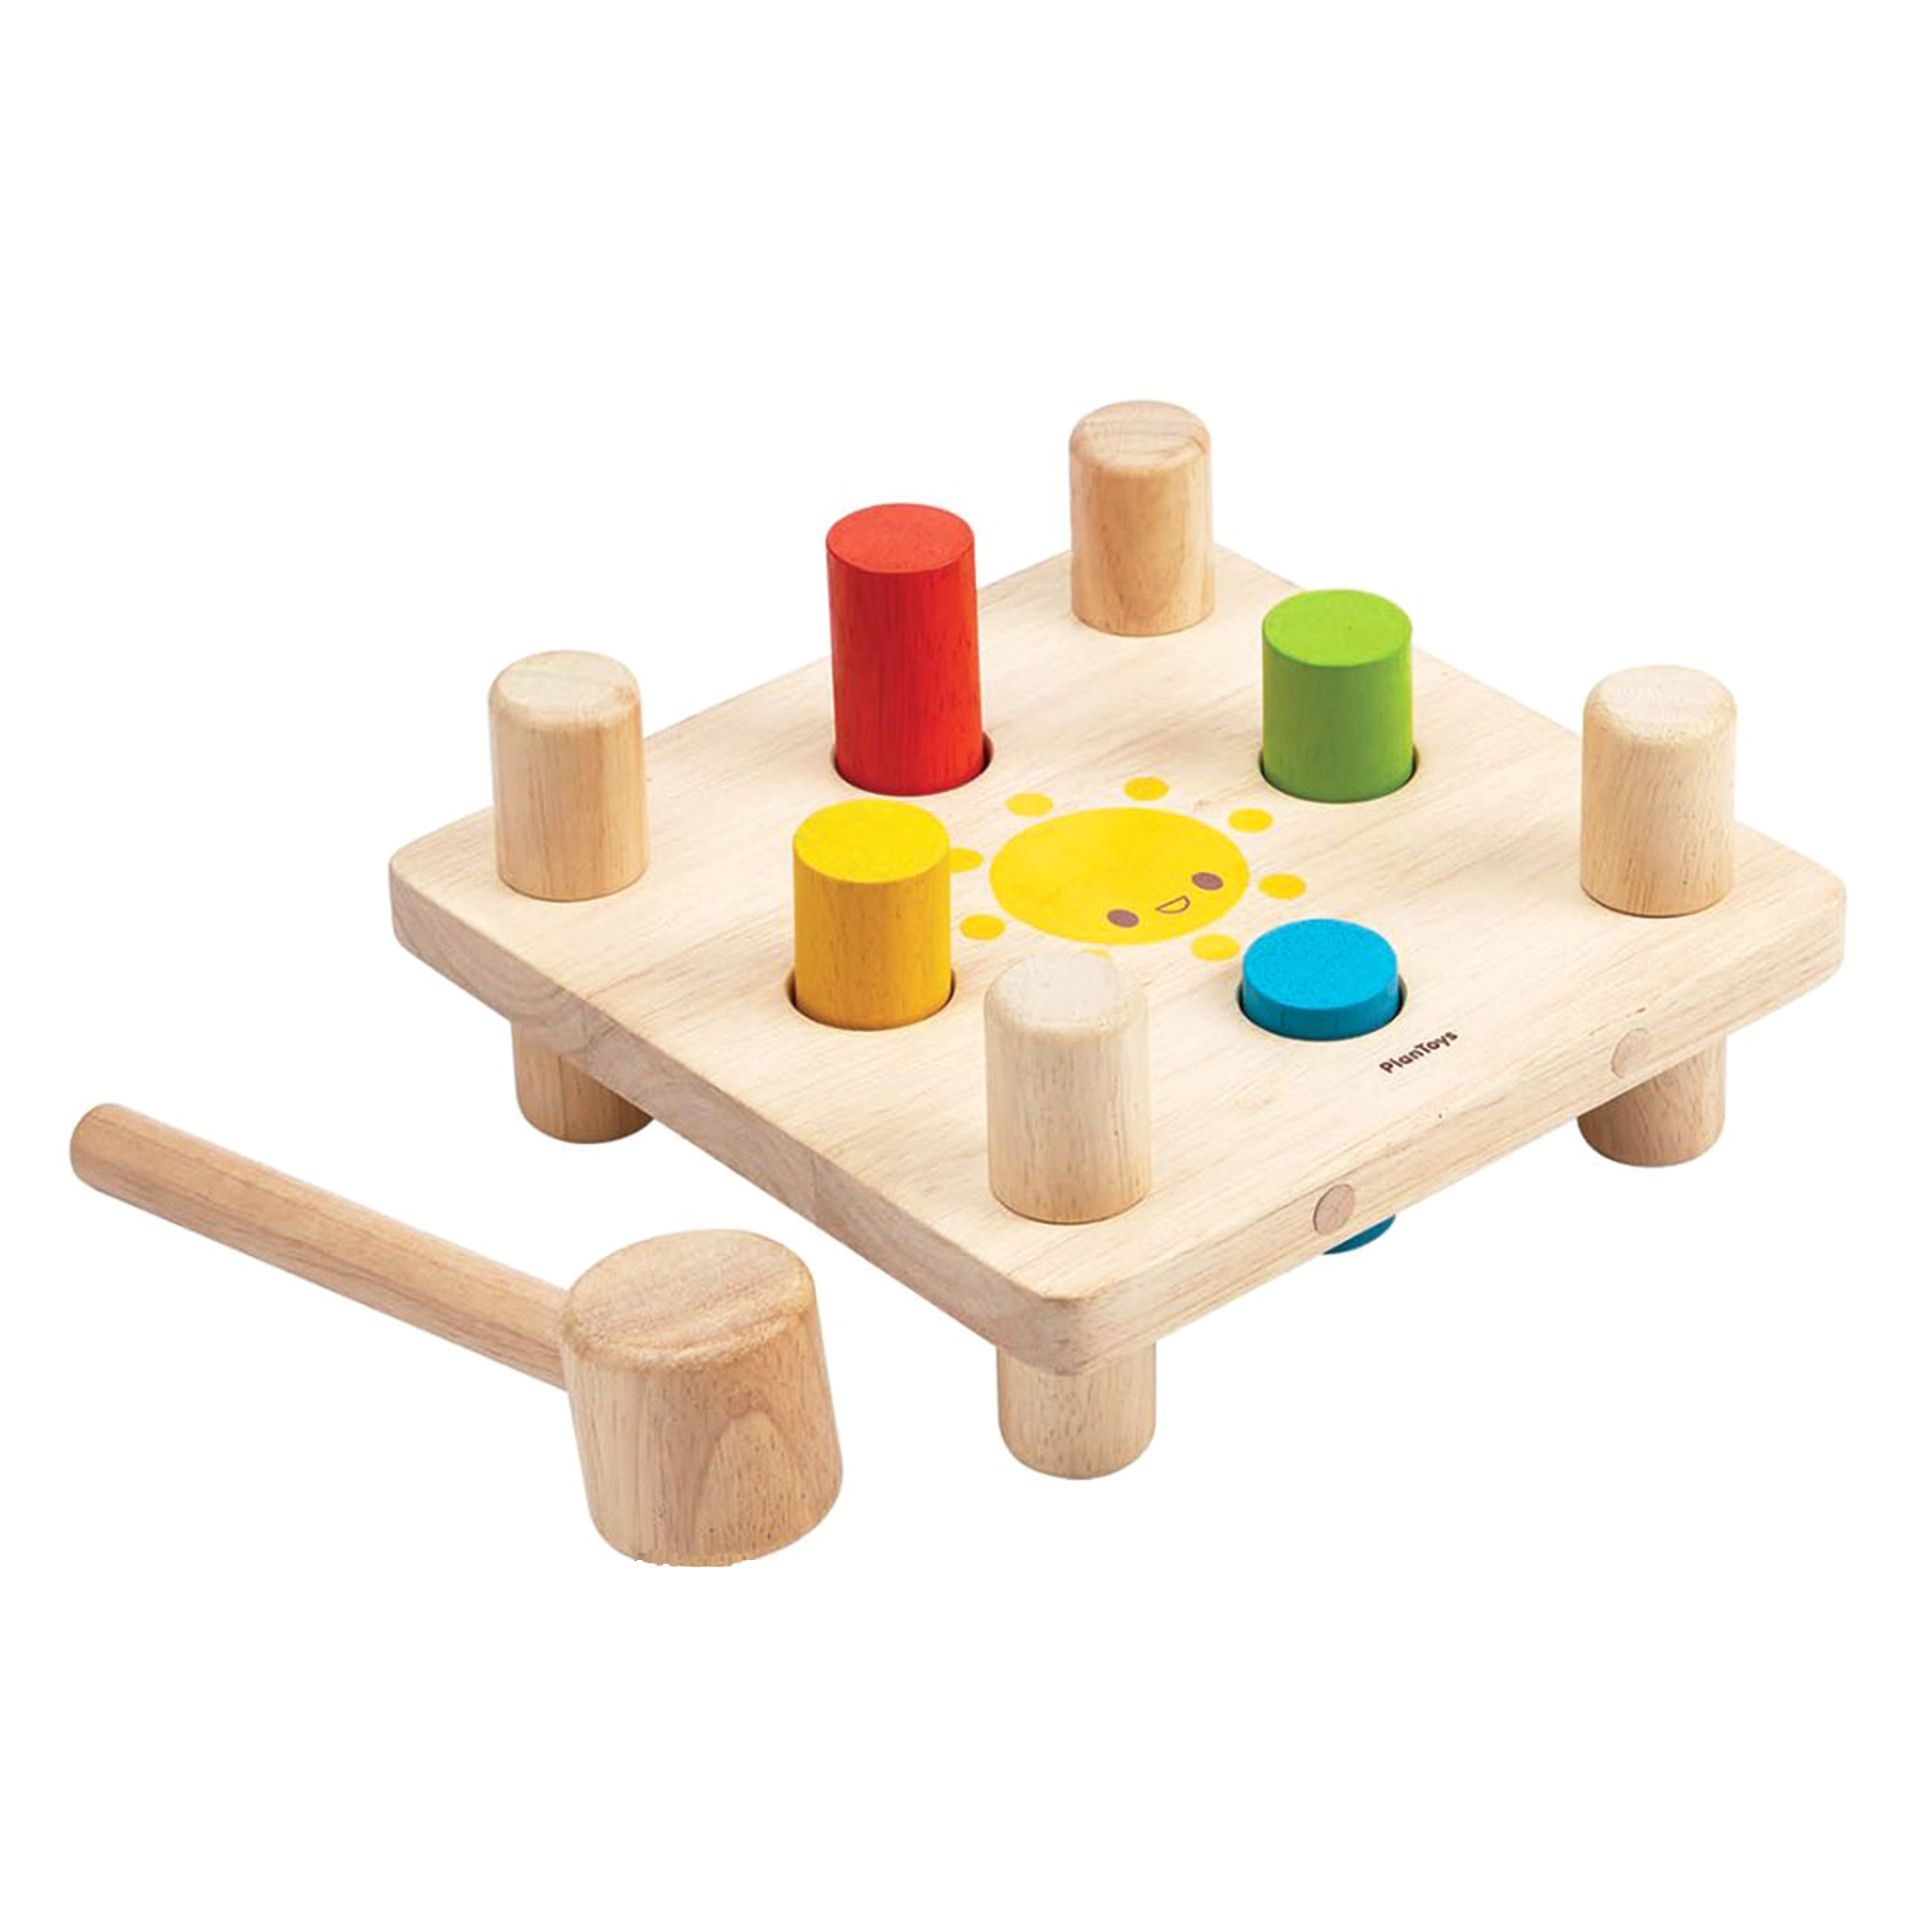 Plan Toys Hammer Peg Plan Toys Pinterest